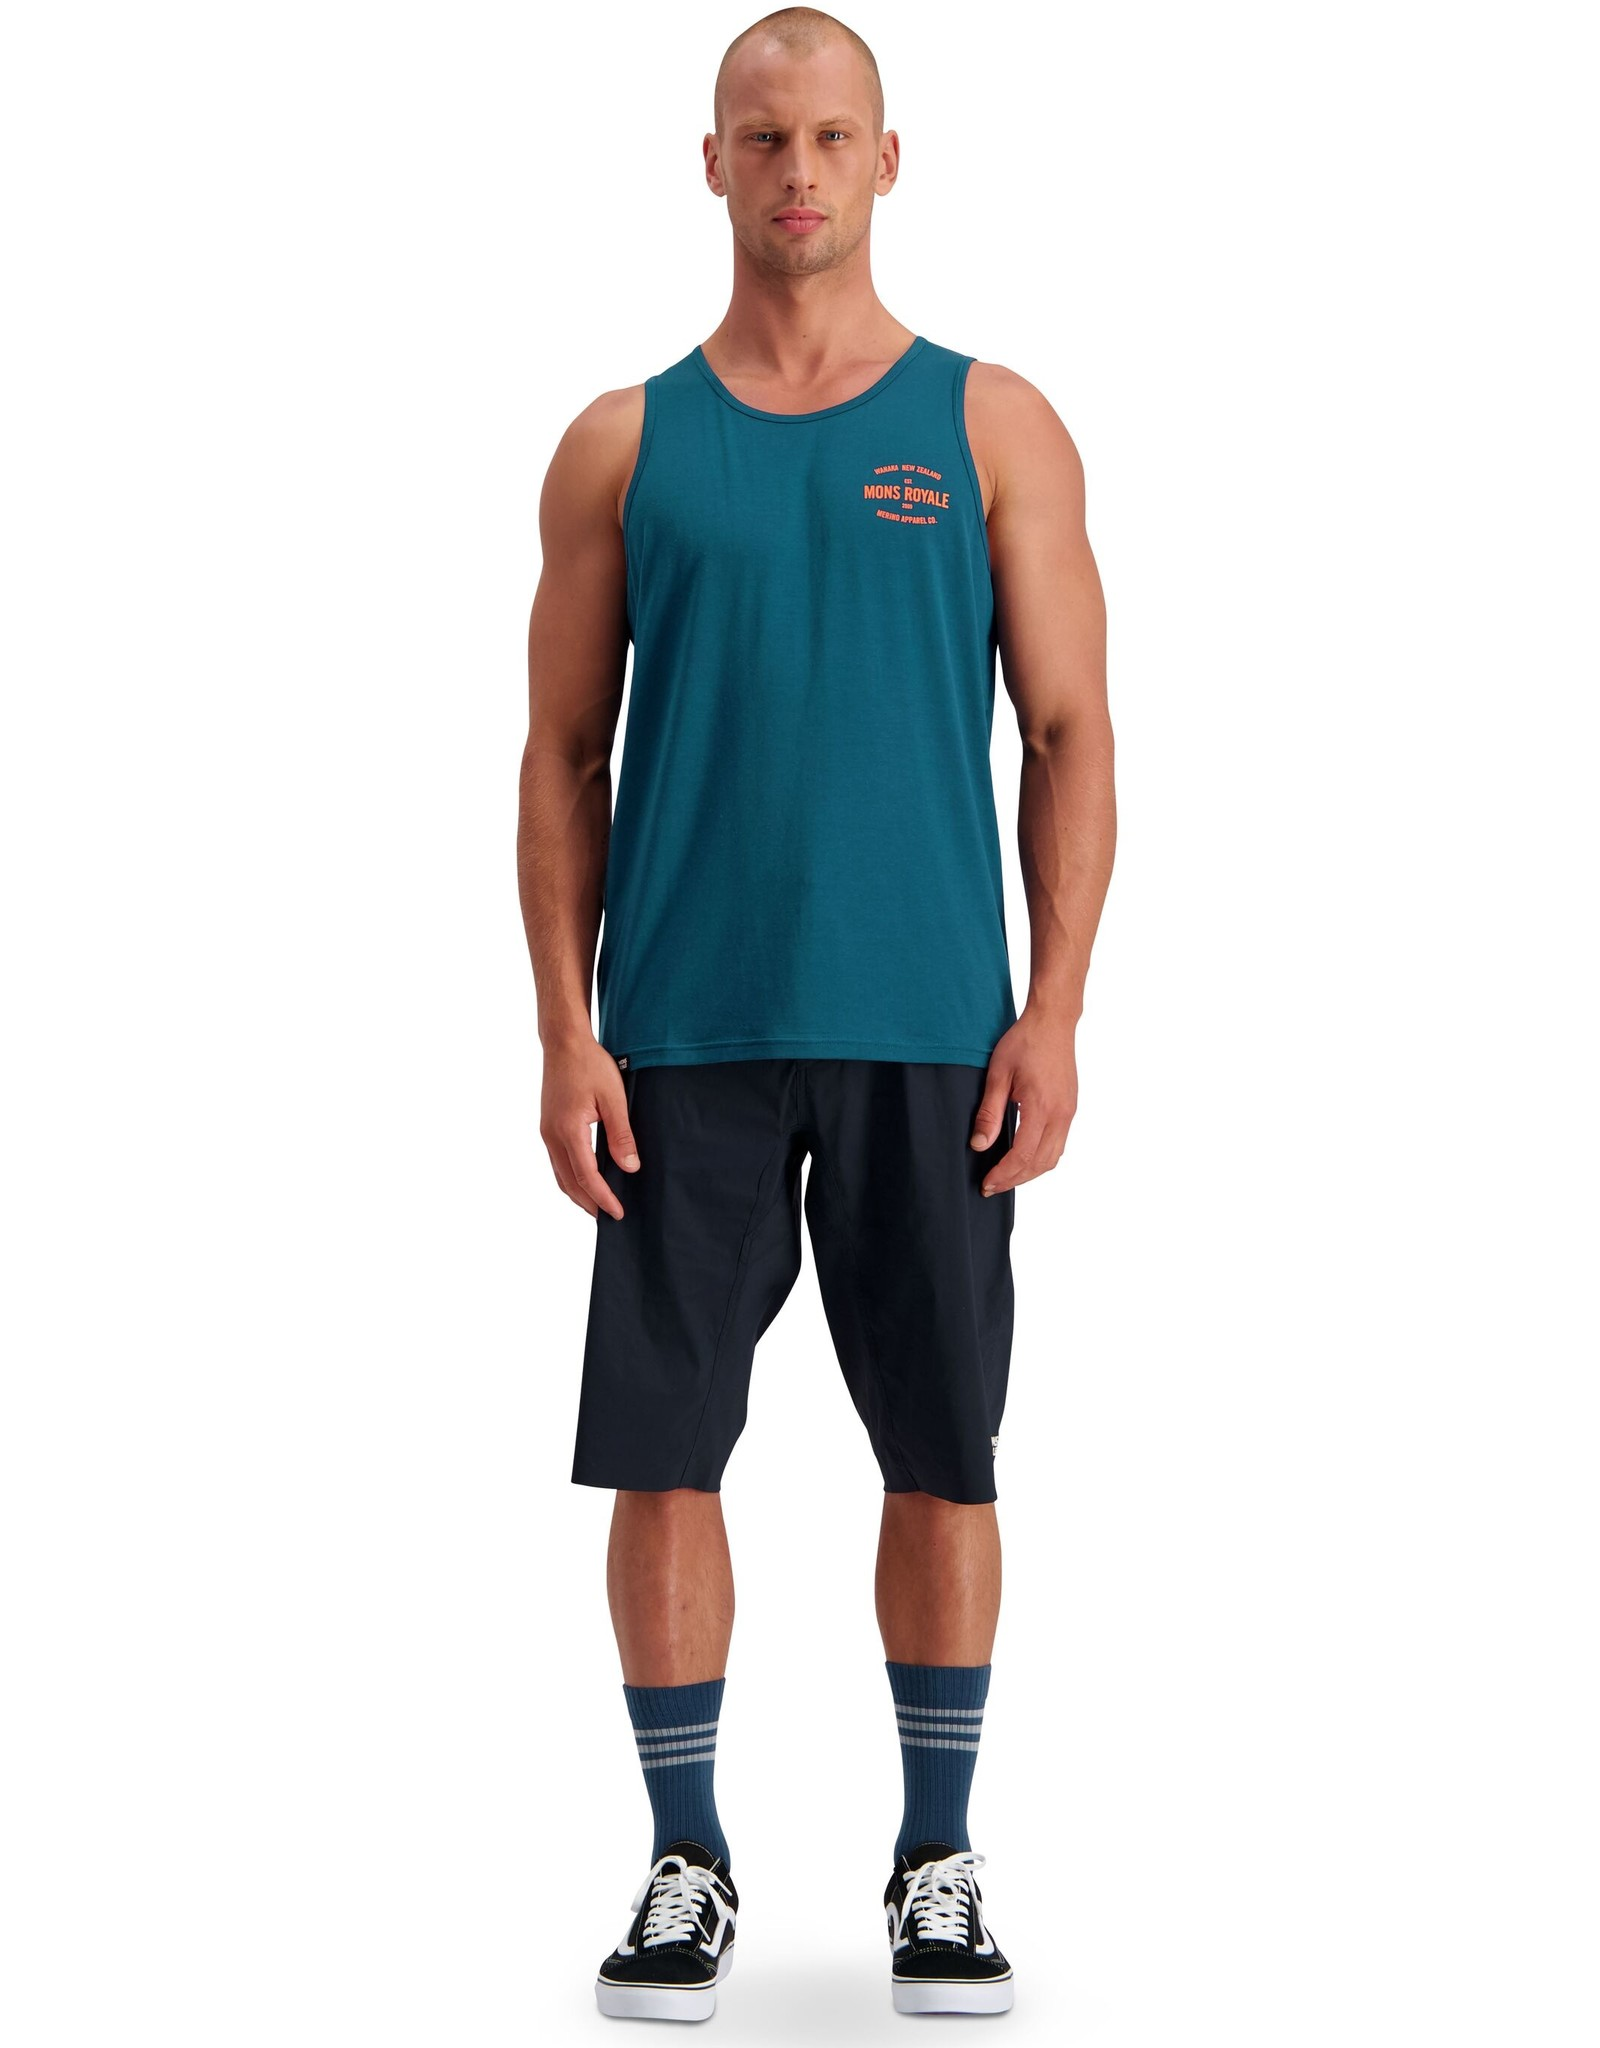 Mons Royale Mons Royale Icon Singlet - S2020